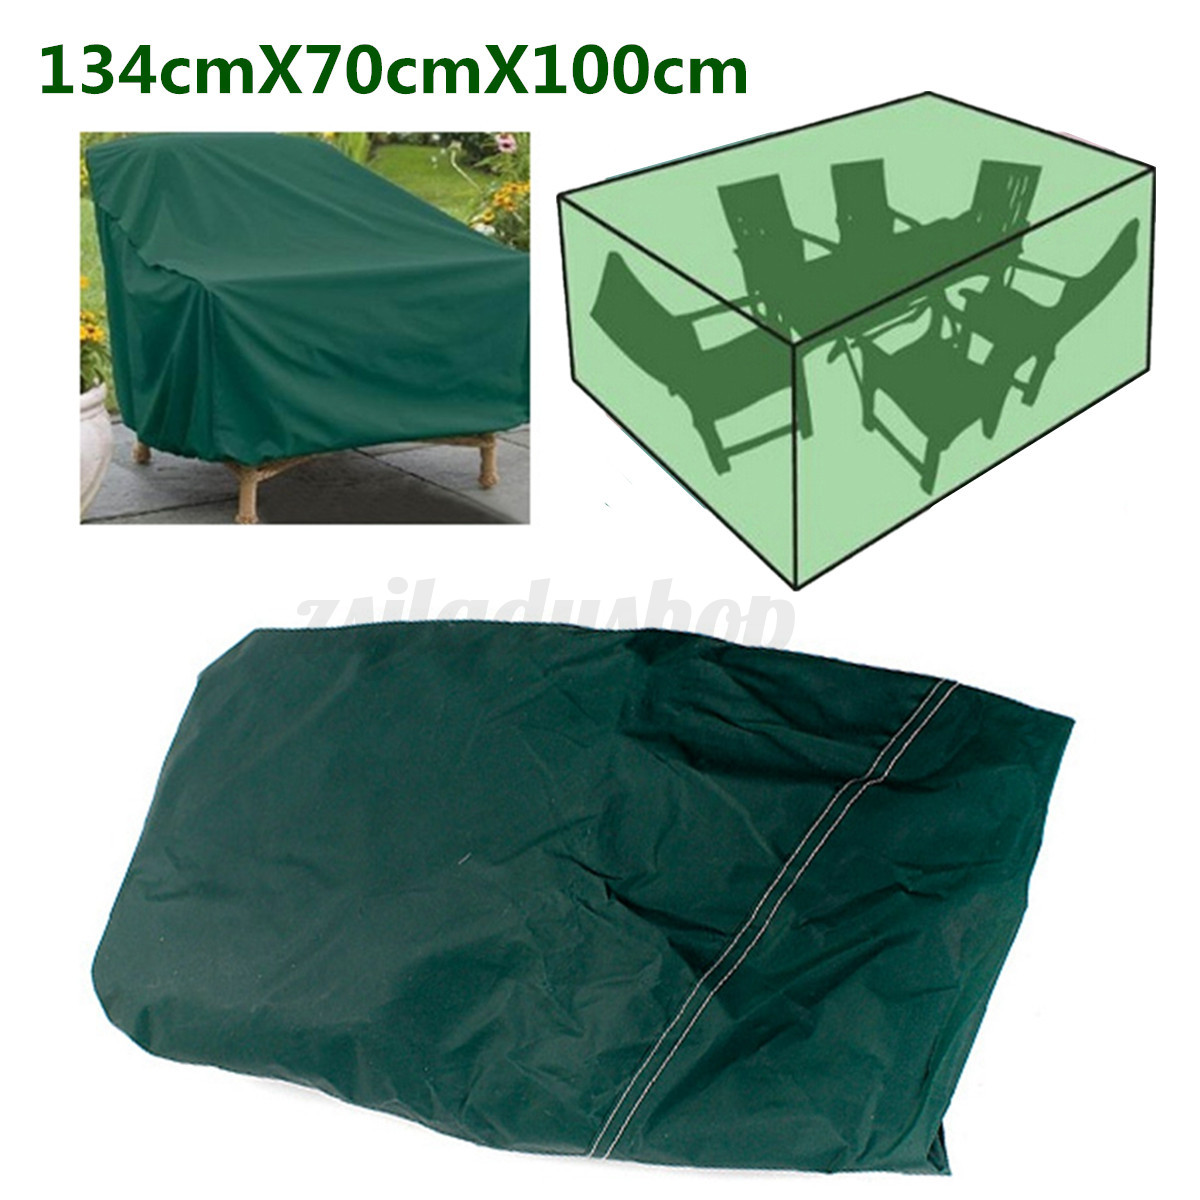 10 Size Outdoor Garden Furniture Cover Waterproof Protcter For Patio Table Ch